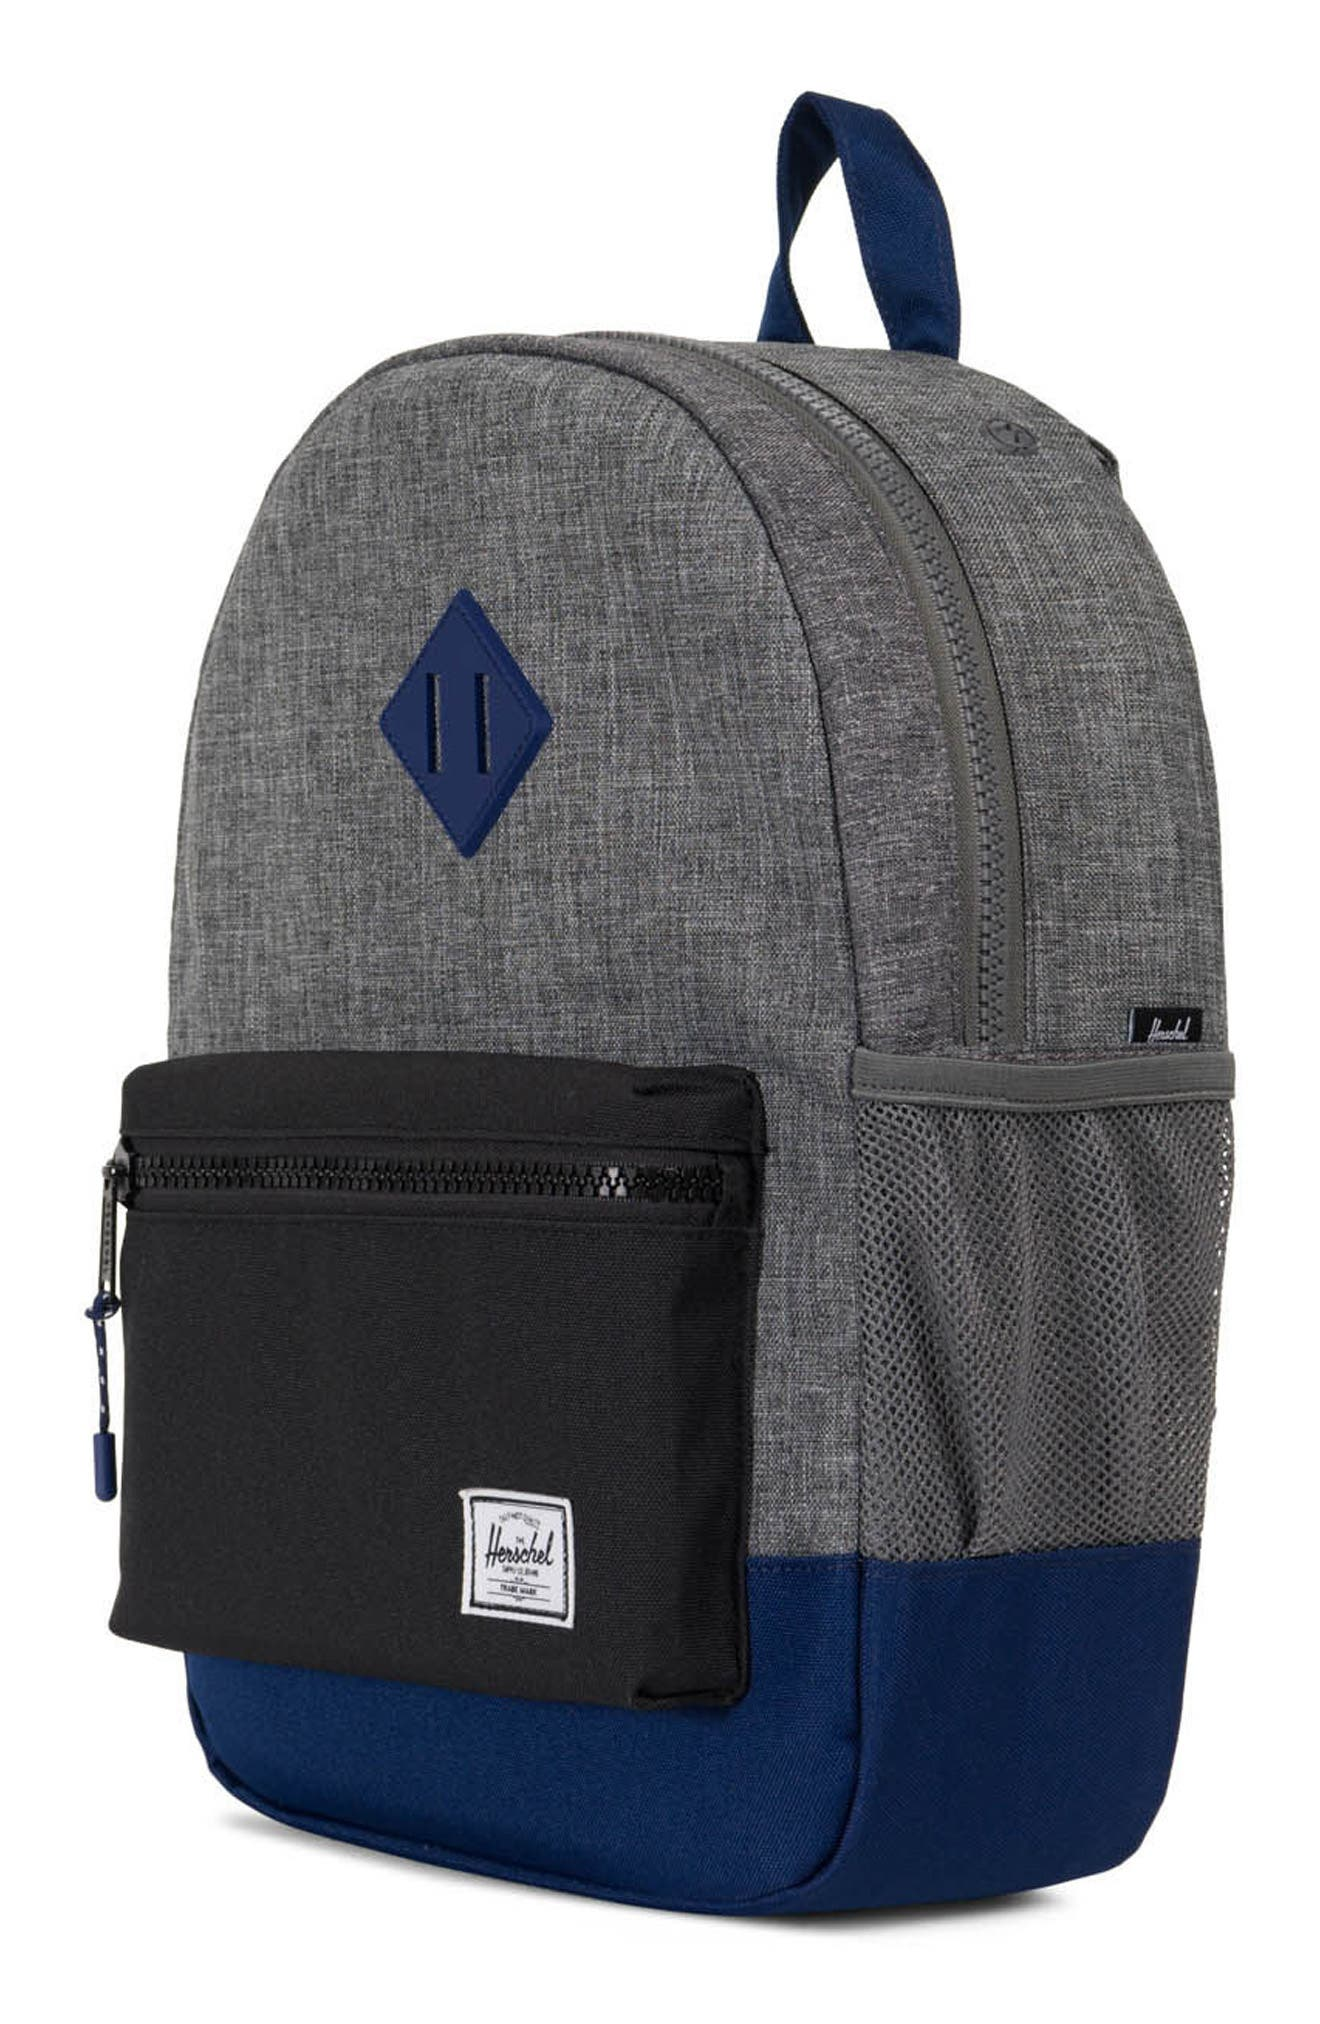 Heritage Backpack,                             Alternate thumbnail 4, color,                             001